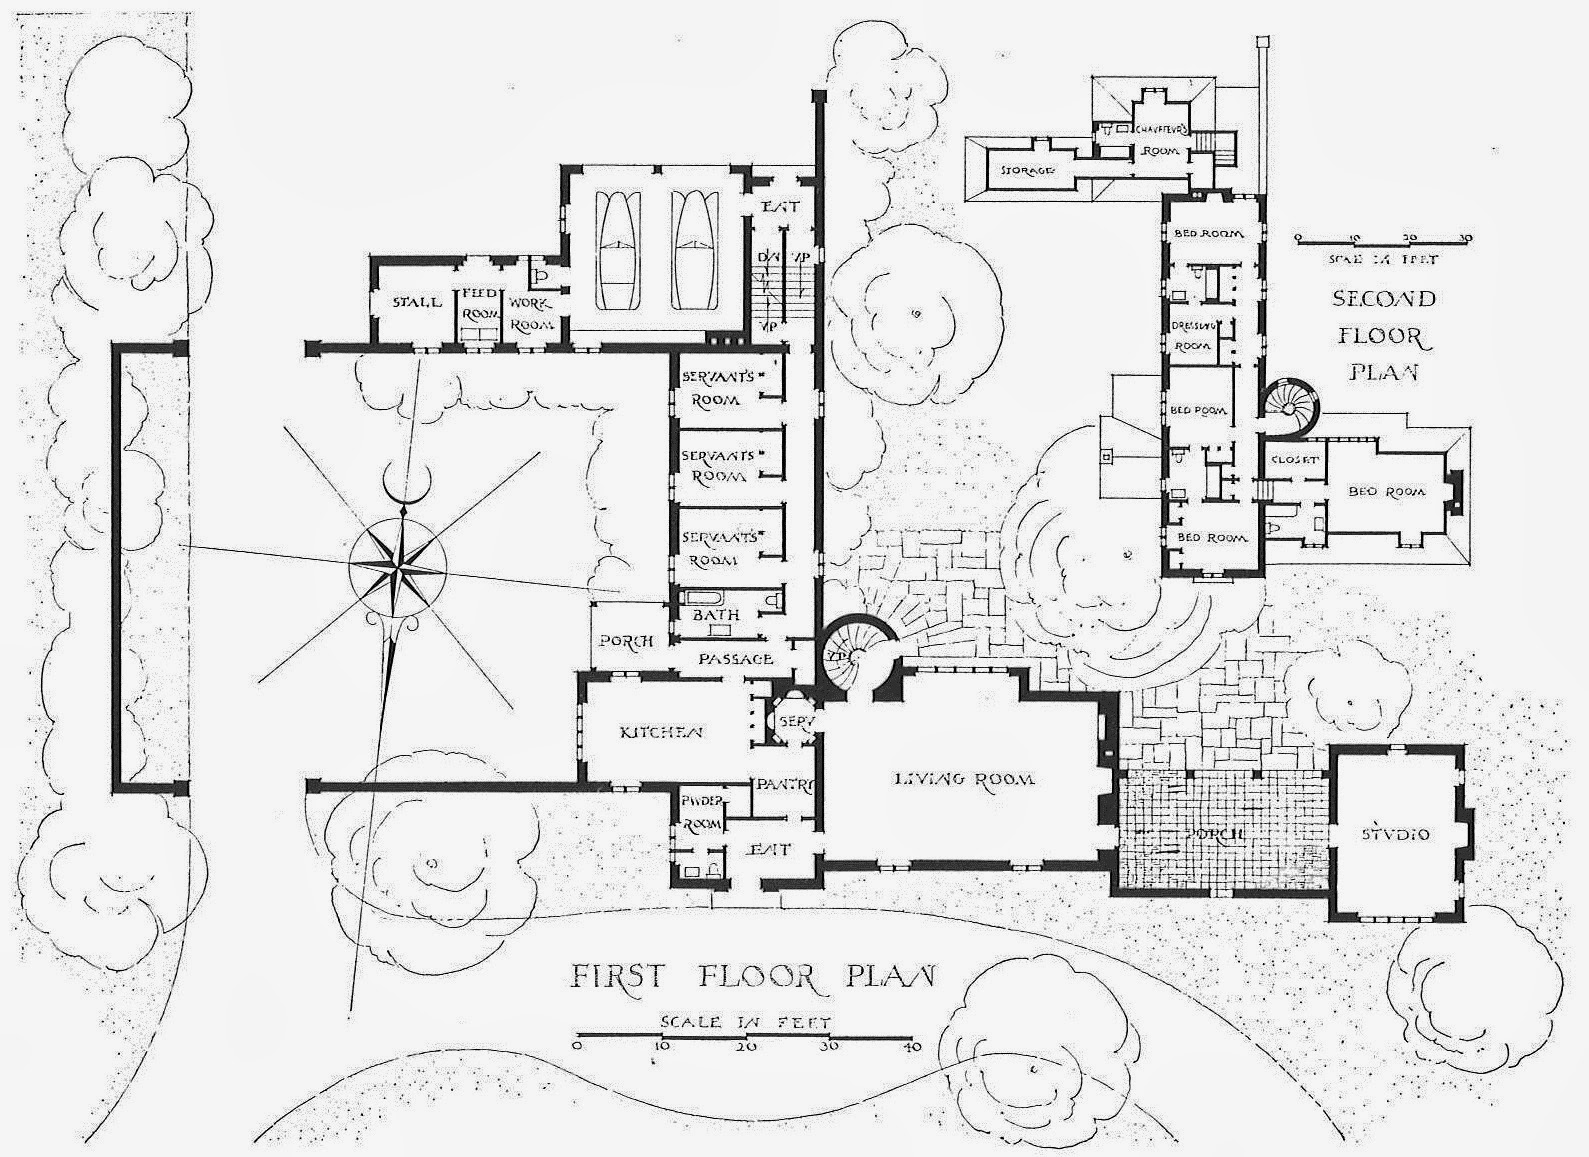 harrison architect designs Photos of Mansions 1920 S if you study the plan you ll notice that the house consists of a rather small entry vestibule and an enormous living room thats all for public space